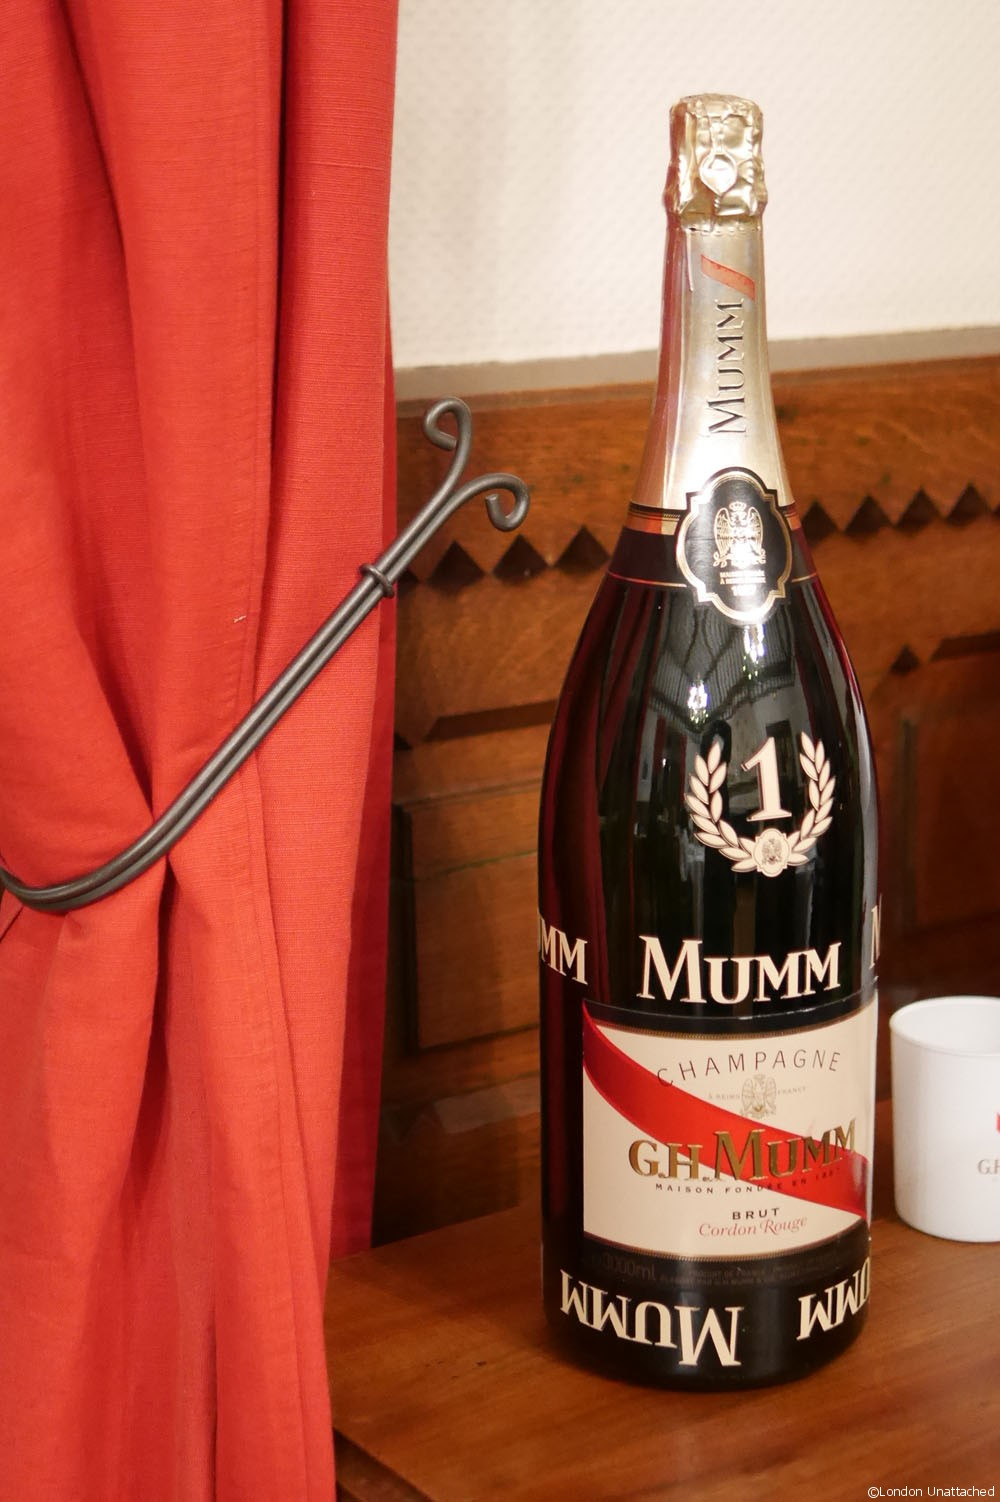 Mumm Champagne Bottle 4